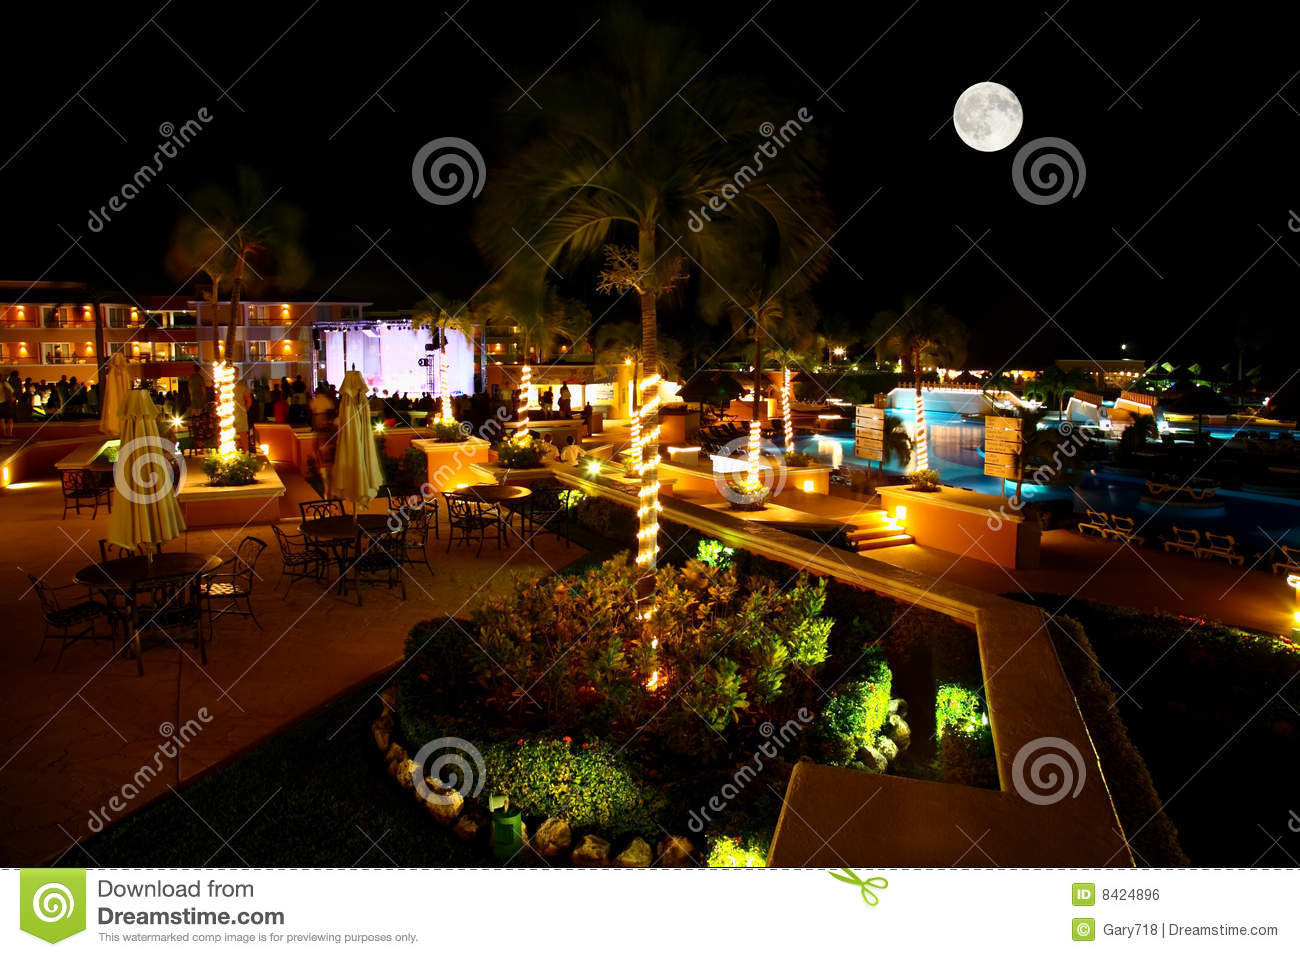 Luxury All Inclusive Beach Resort At Night Royalty Free Stock Image ...